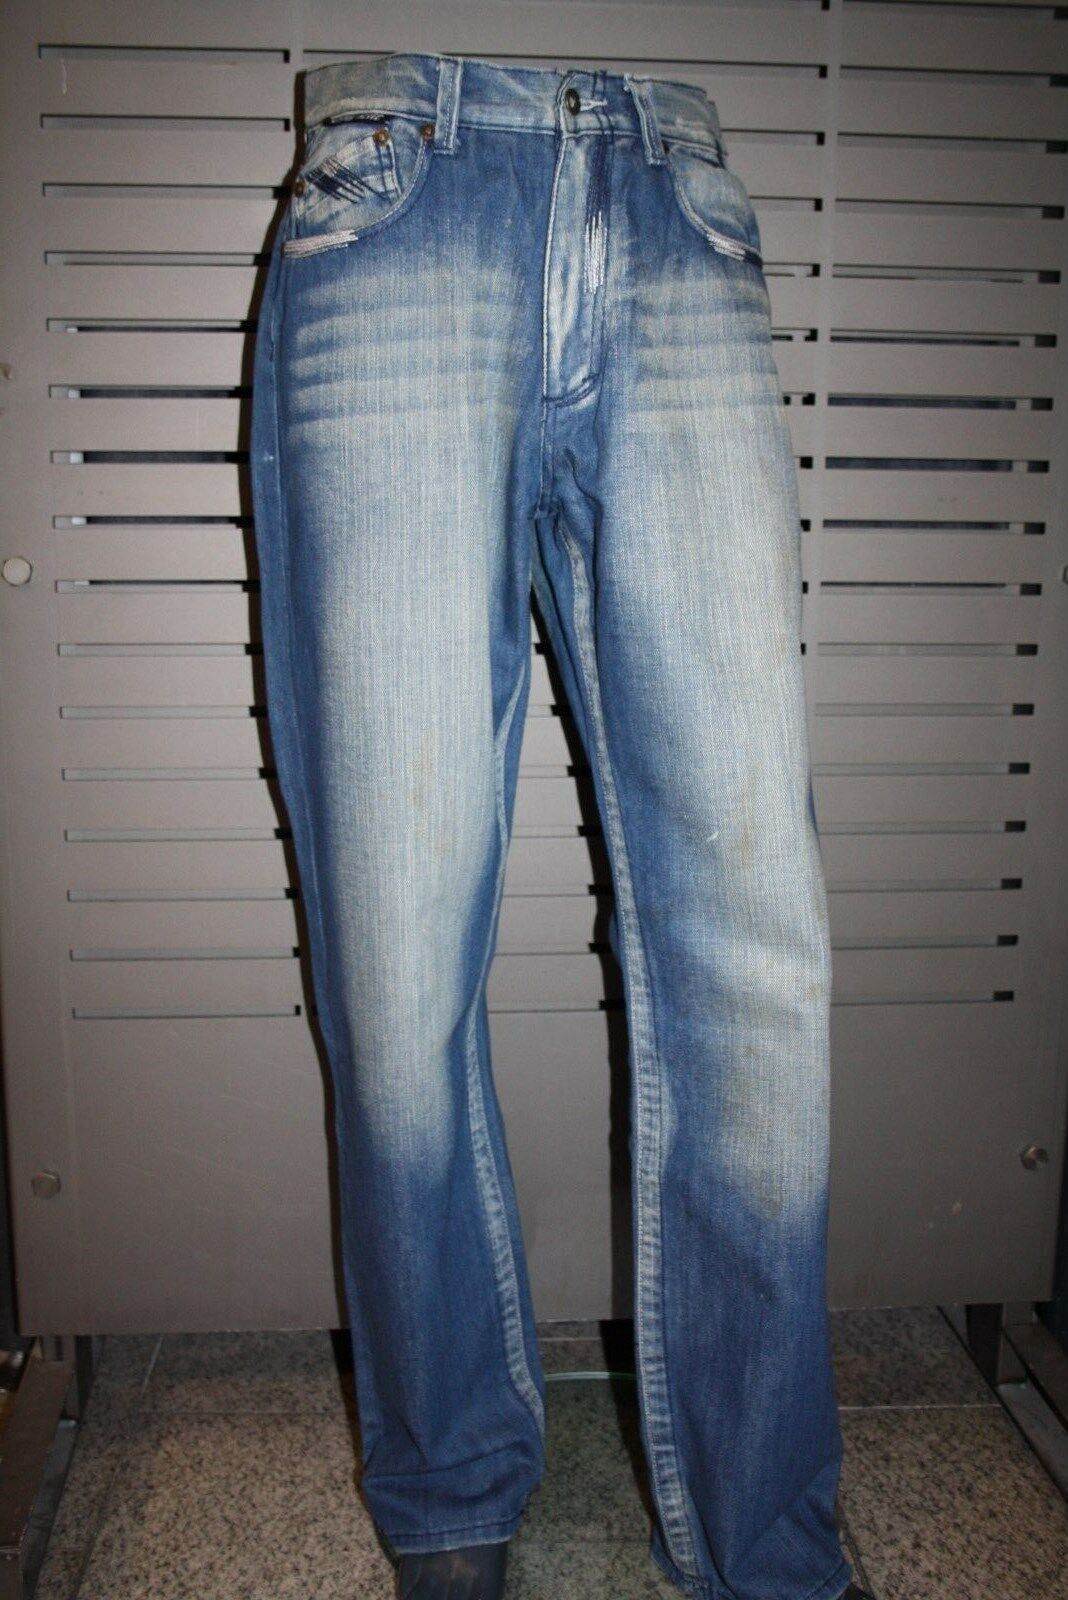 Thug Life Jeans TLDS10-071 New Los Angeles Hip Hop Baggy New York